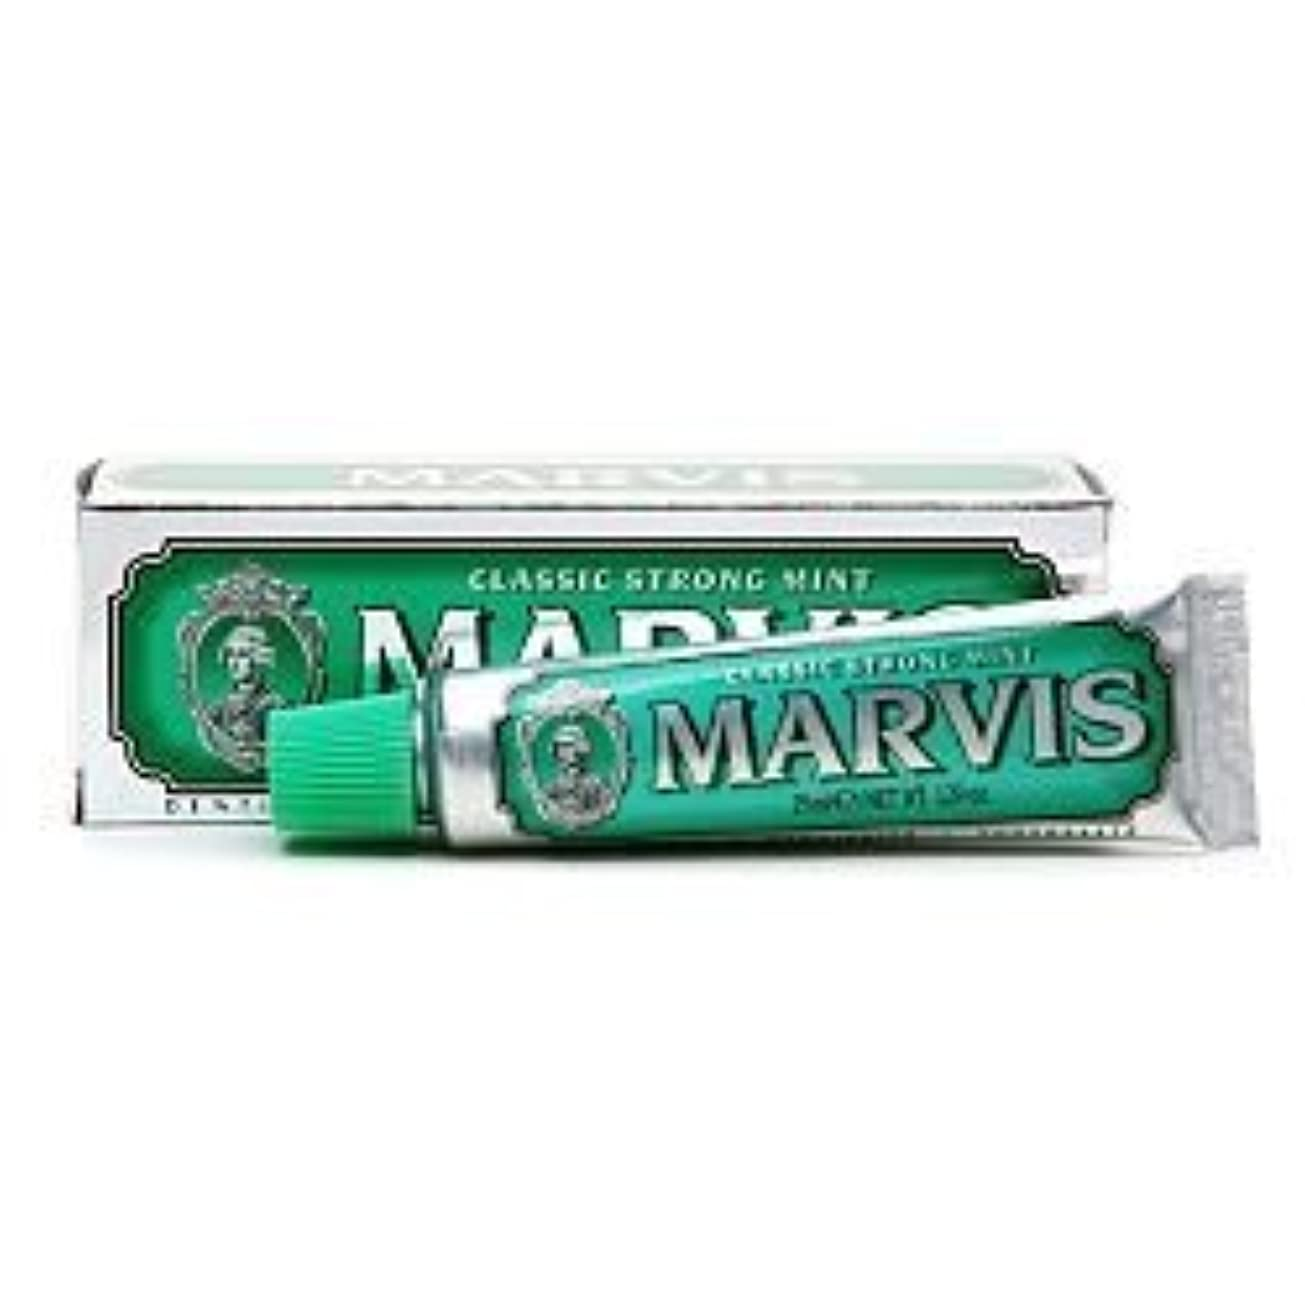 インスタントこどもの宮殿混乱Marvis Travel Sized Toothpaste, Classic Strong Mint 1.29 oz (25 ml) (Qunatity of 4) by Marvis [並行輸入品]